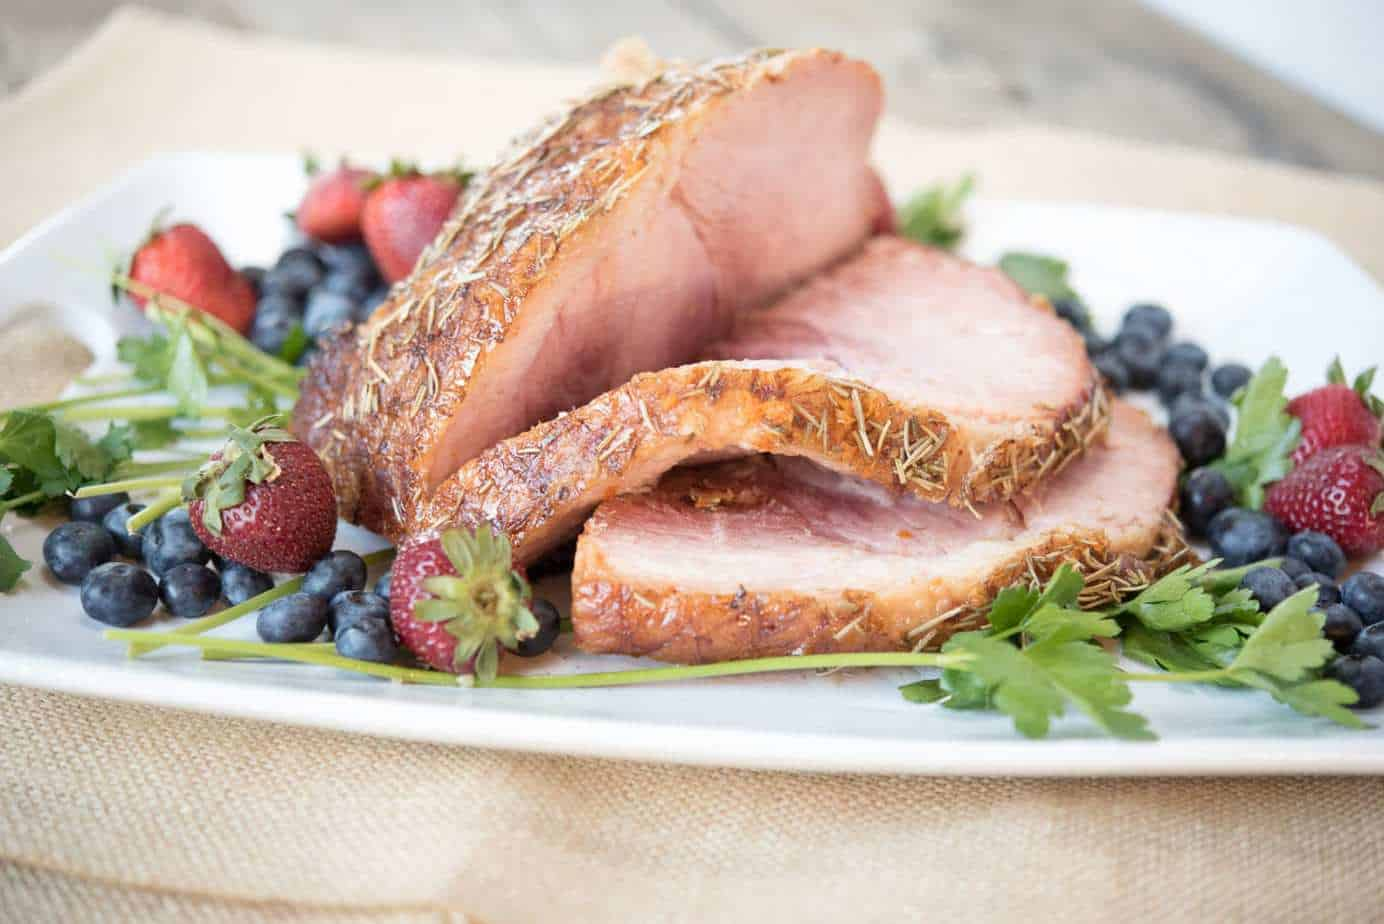 Paleo and Autoimmune Paleo friendly Slow Cooker Ham by Thriving On Paleo